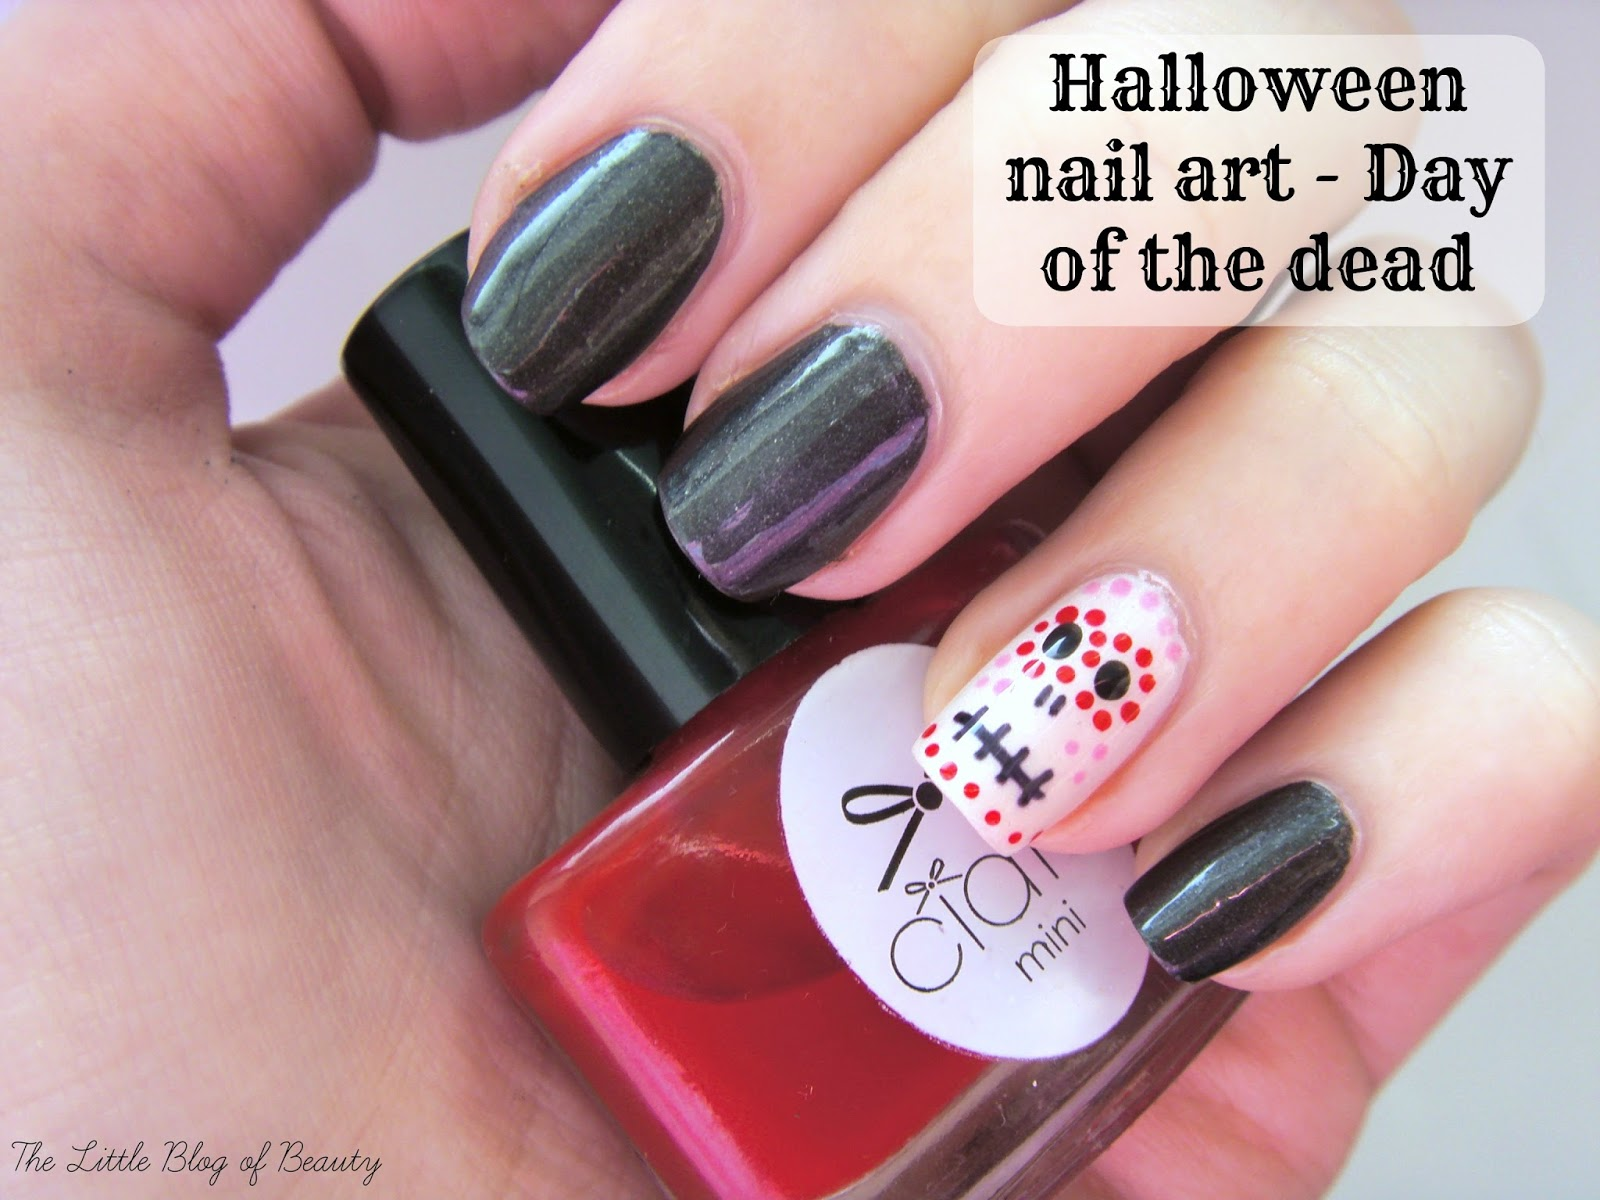 Halloween nail art - Day of the dead